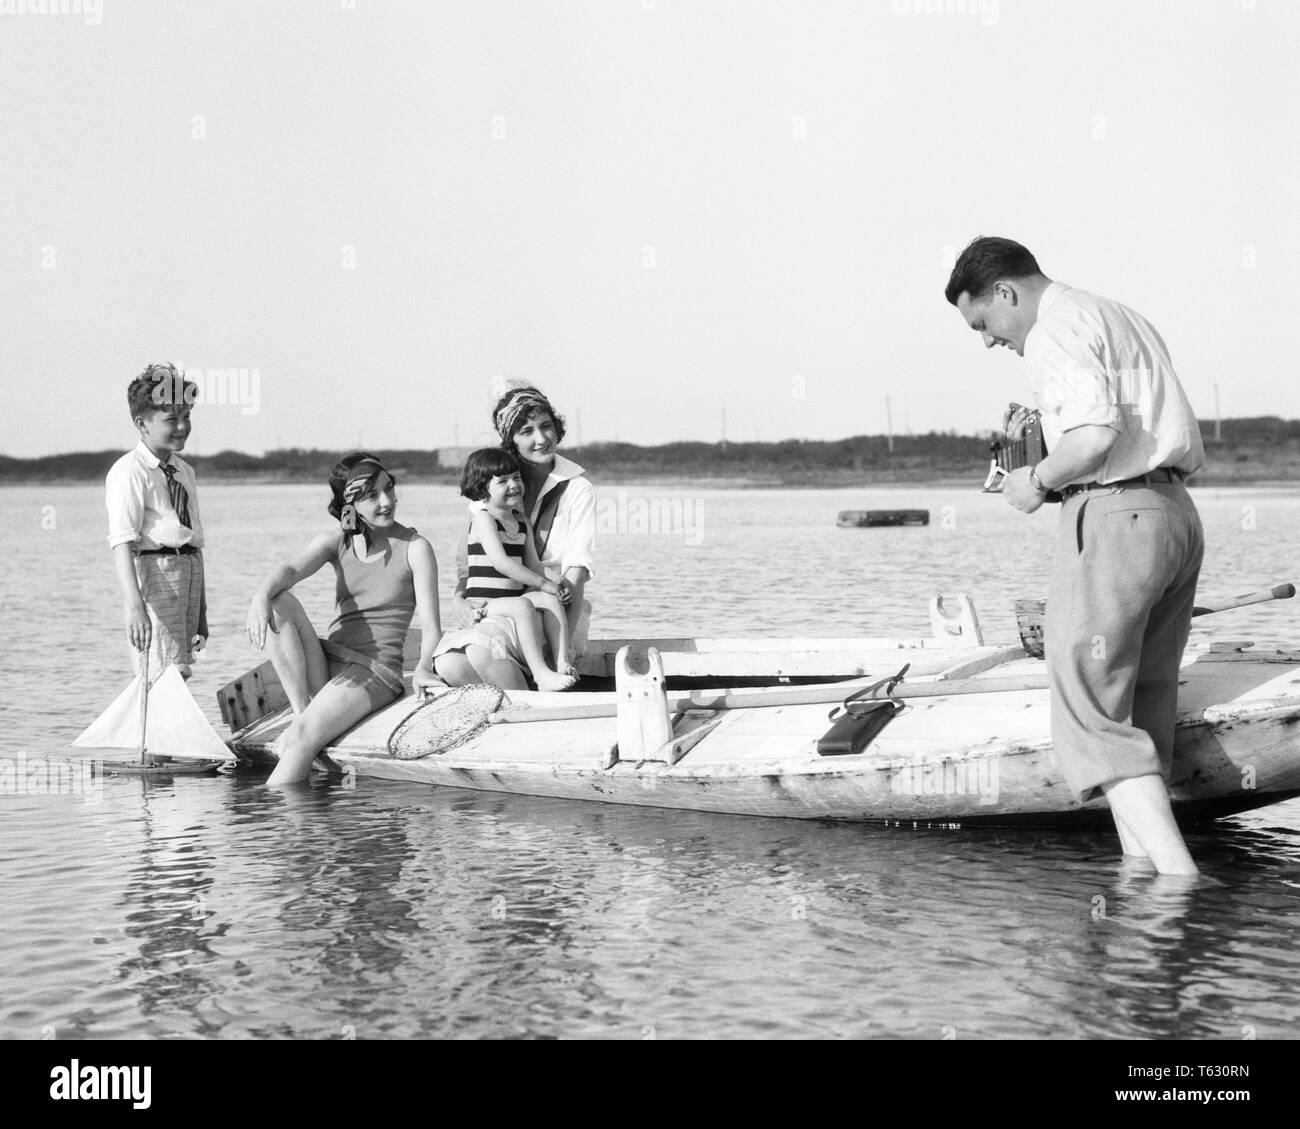 1920s FATHER WITH FOLDING KODAK CAMERA PHOTOGRAPHING WIFE SON DAUGHTER AND AUNT ON WOODEN DUCK BOAT BARNEGAT BAY NEW JERSEY USA - u840 HAR001 HARS MOM WOODEN NOSTALGIC PAIR BEAUTY MOTHERS OLD TIME NOSTALGIA BROTHER OLD FASHION SISTER 1 JUVENILE COMMUNICATION YOUNG ADULT TEAMWORK VACATION RELAXING SONS PLEASED FAMILIES JOY LIFESTYLE FIVE CELEBRATION FEMALES MARRIED 5 BROTHERS RURAL SPOUSE HUSBANDS COPY SPACE FULL-LENGTH LADIES DAUGHTERS PERSONS MALES FOLDING SIBLINGS SISTERS FATHERS B&W PARTNER TIME OFF SKILL ACTIVITY AMUSEMENT HAPPINESS CHEERFUL HOBBY TRIP INTEREST AND GETAWAY DADS EXCITEMENT - Stock Image